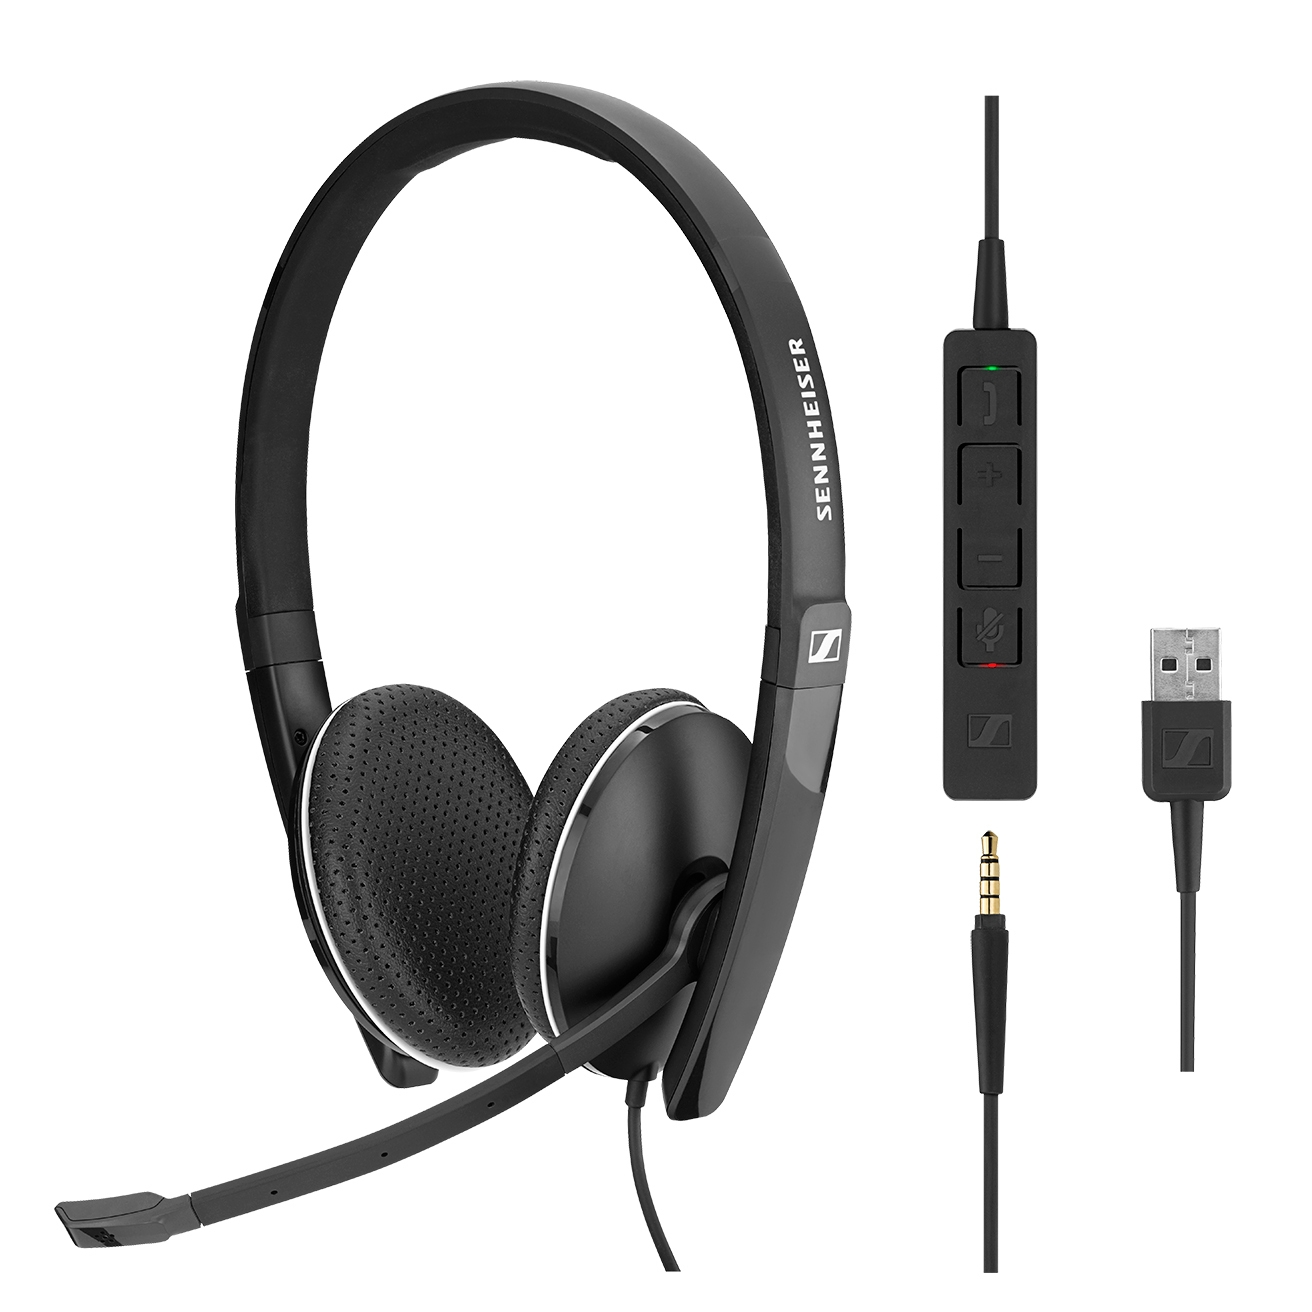 Sennheiser SC 165 - USB and 3.5mm Jack